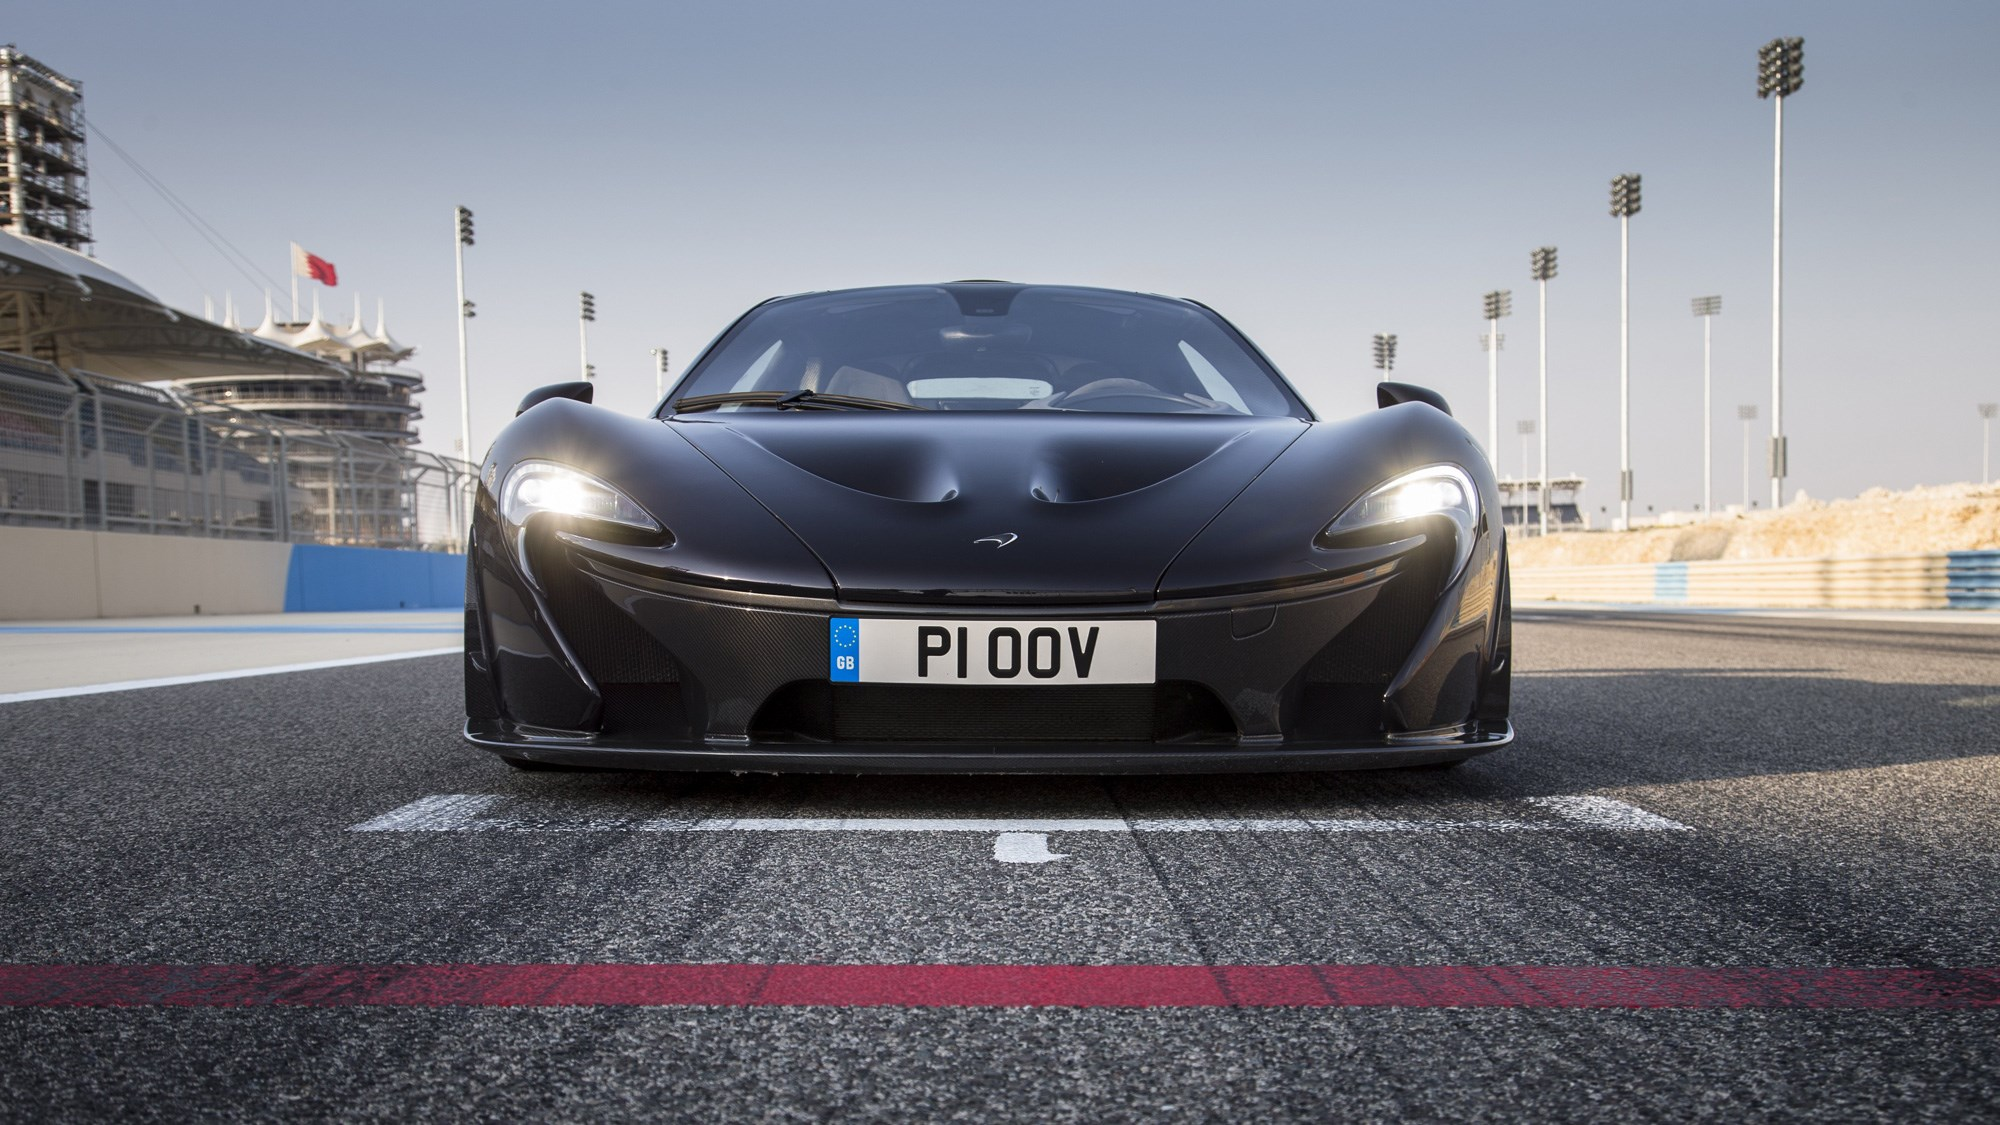 McLaren P1 review, Bahrain, black, dead-on front view